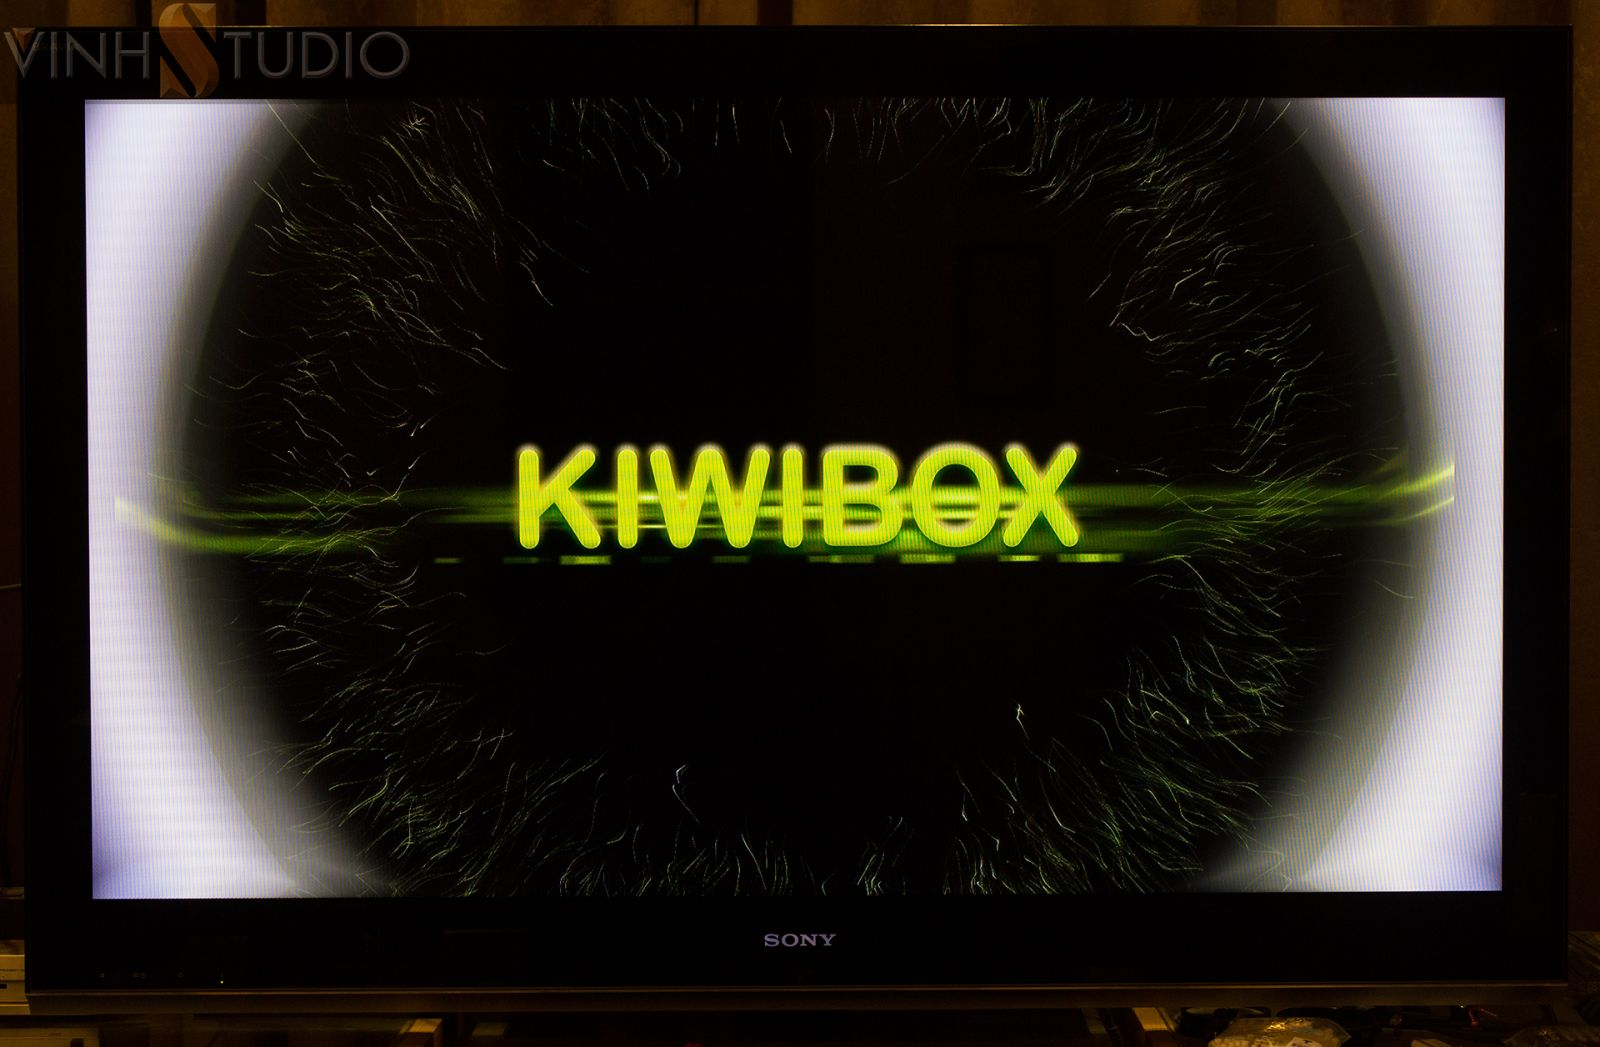 giao dien khoi dong kiwibox s10